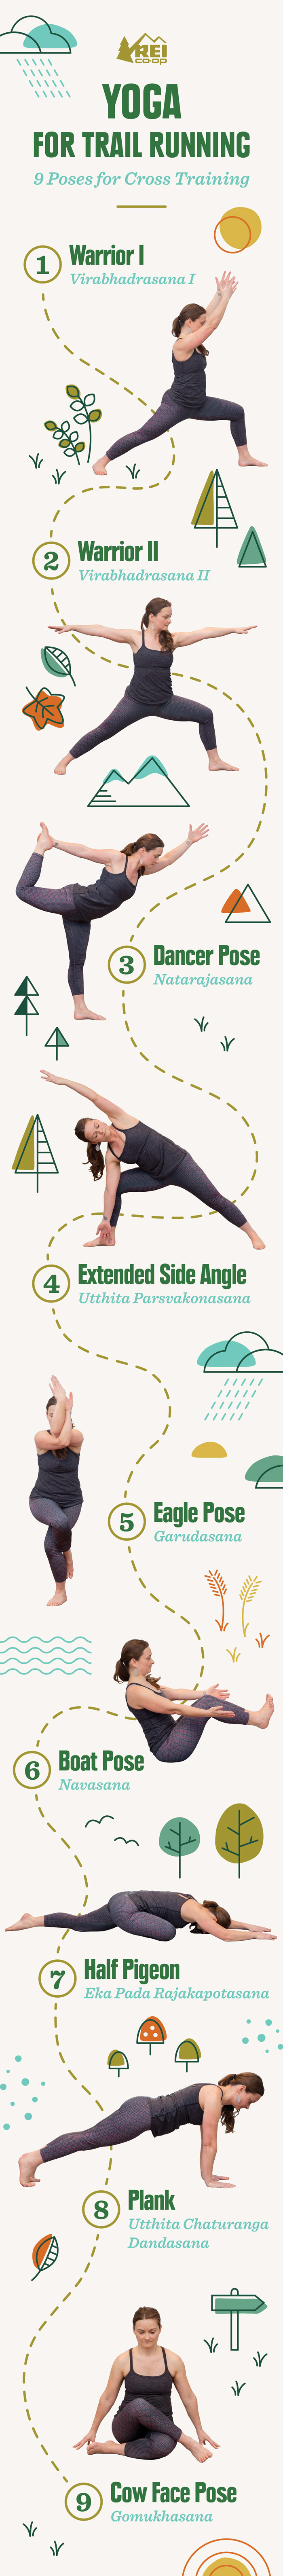 yoga_for_trail_running